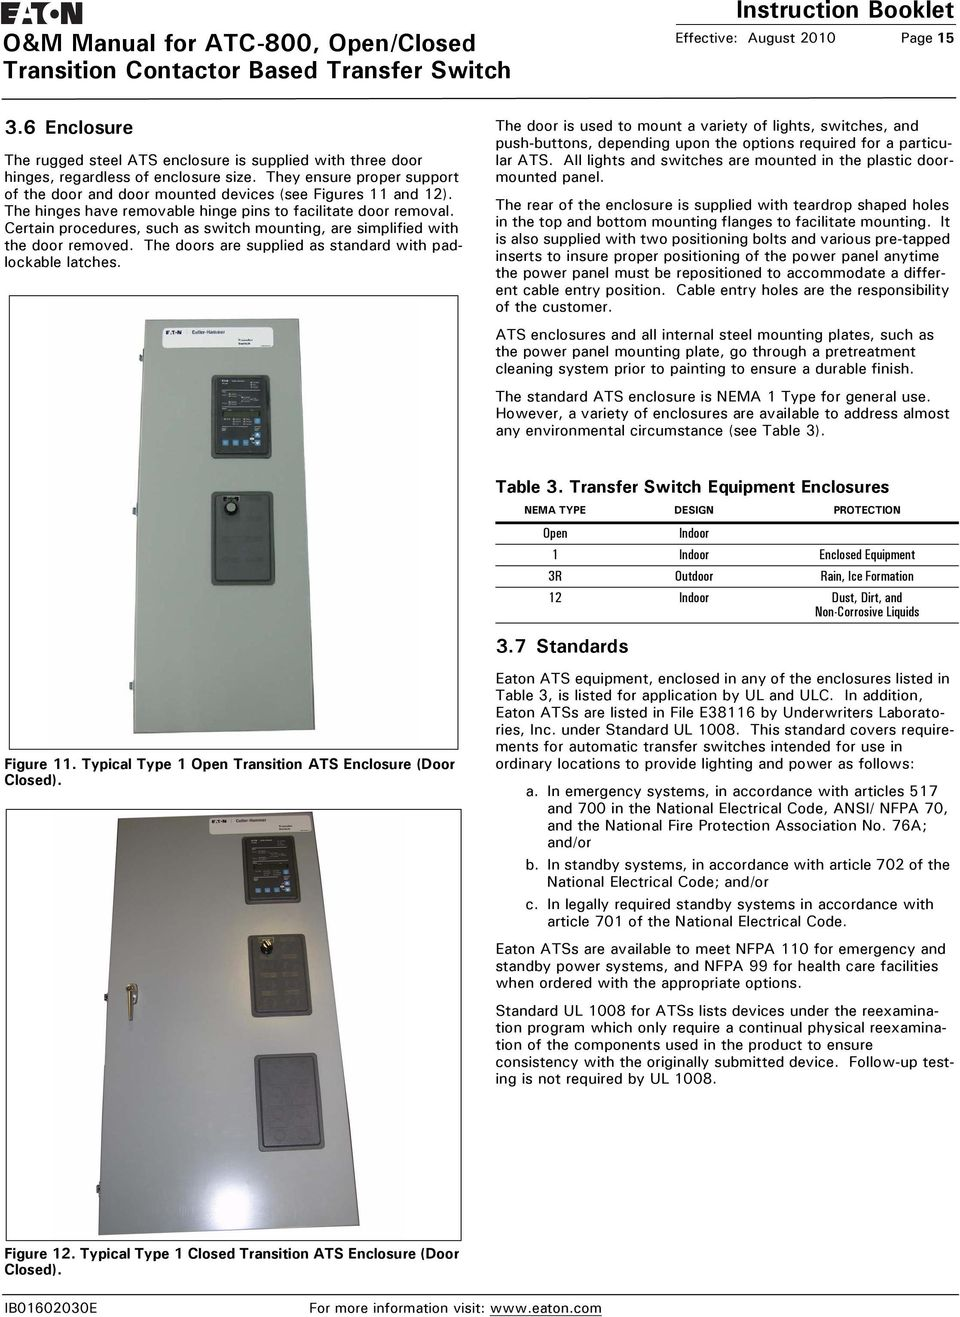 O & M Manual for ATC-800, Open/Closed Transition Contactor